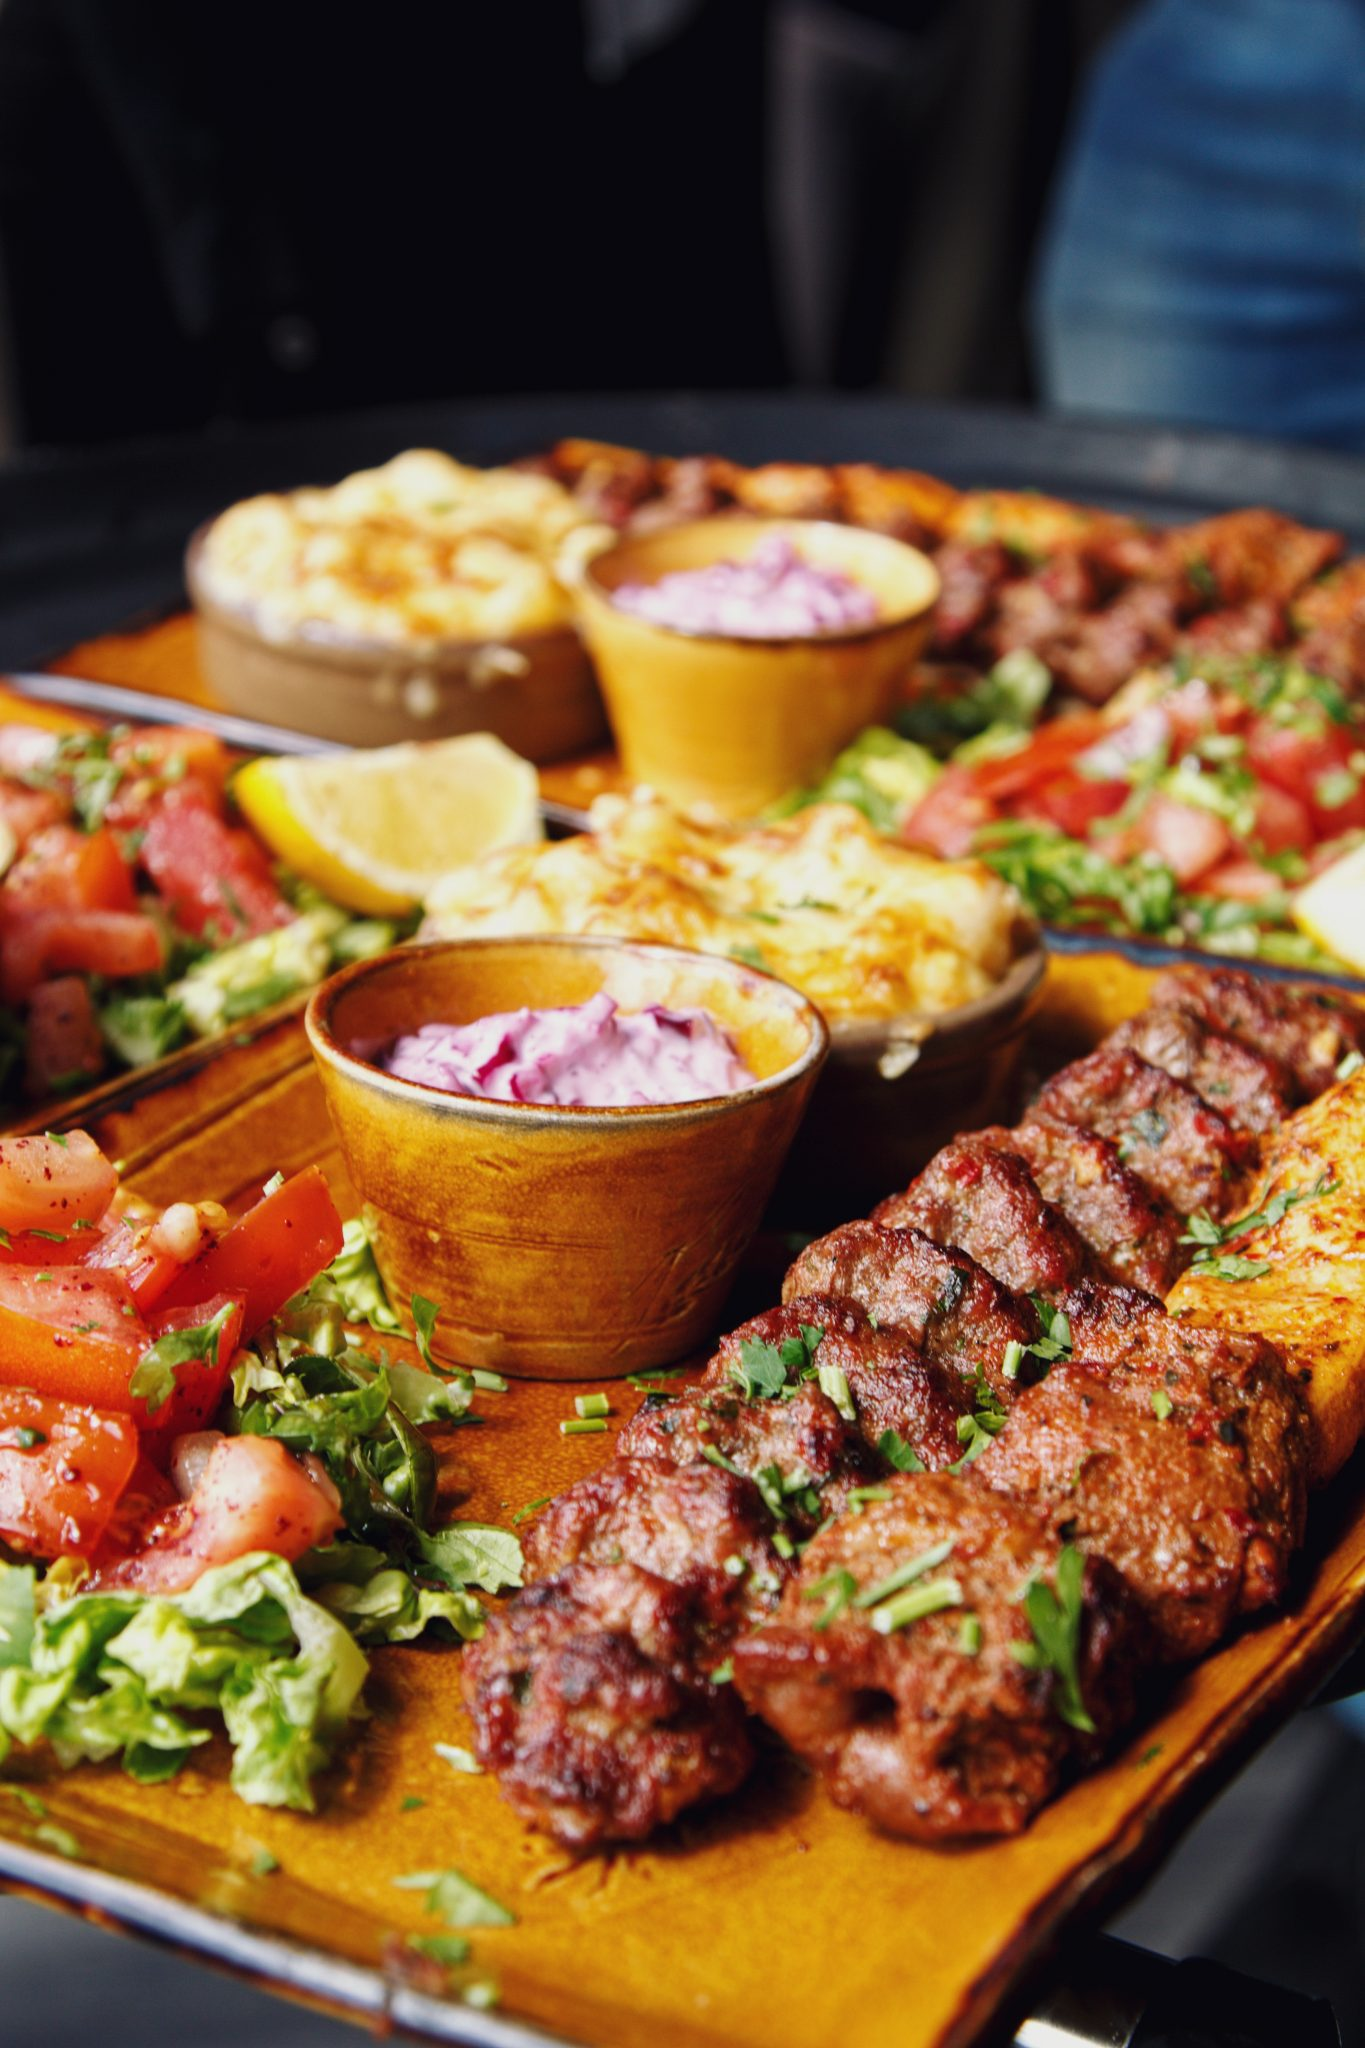 Tarshish mediterranean grill in north london for Cuisine restaurant